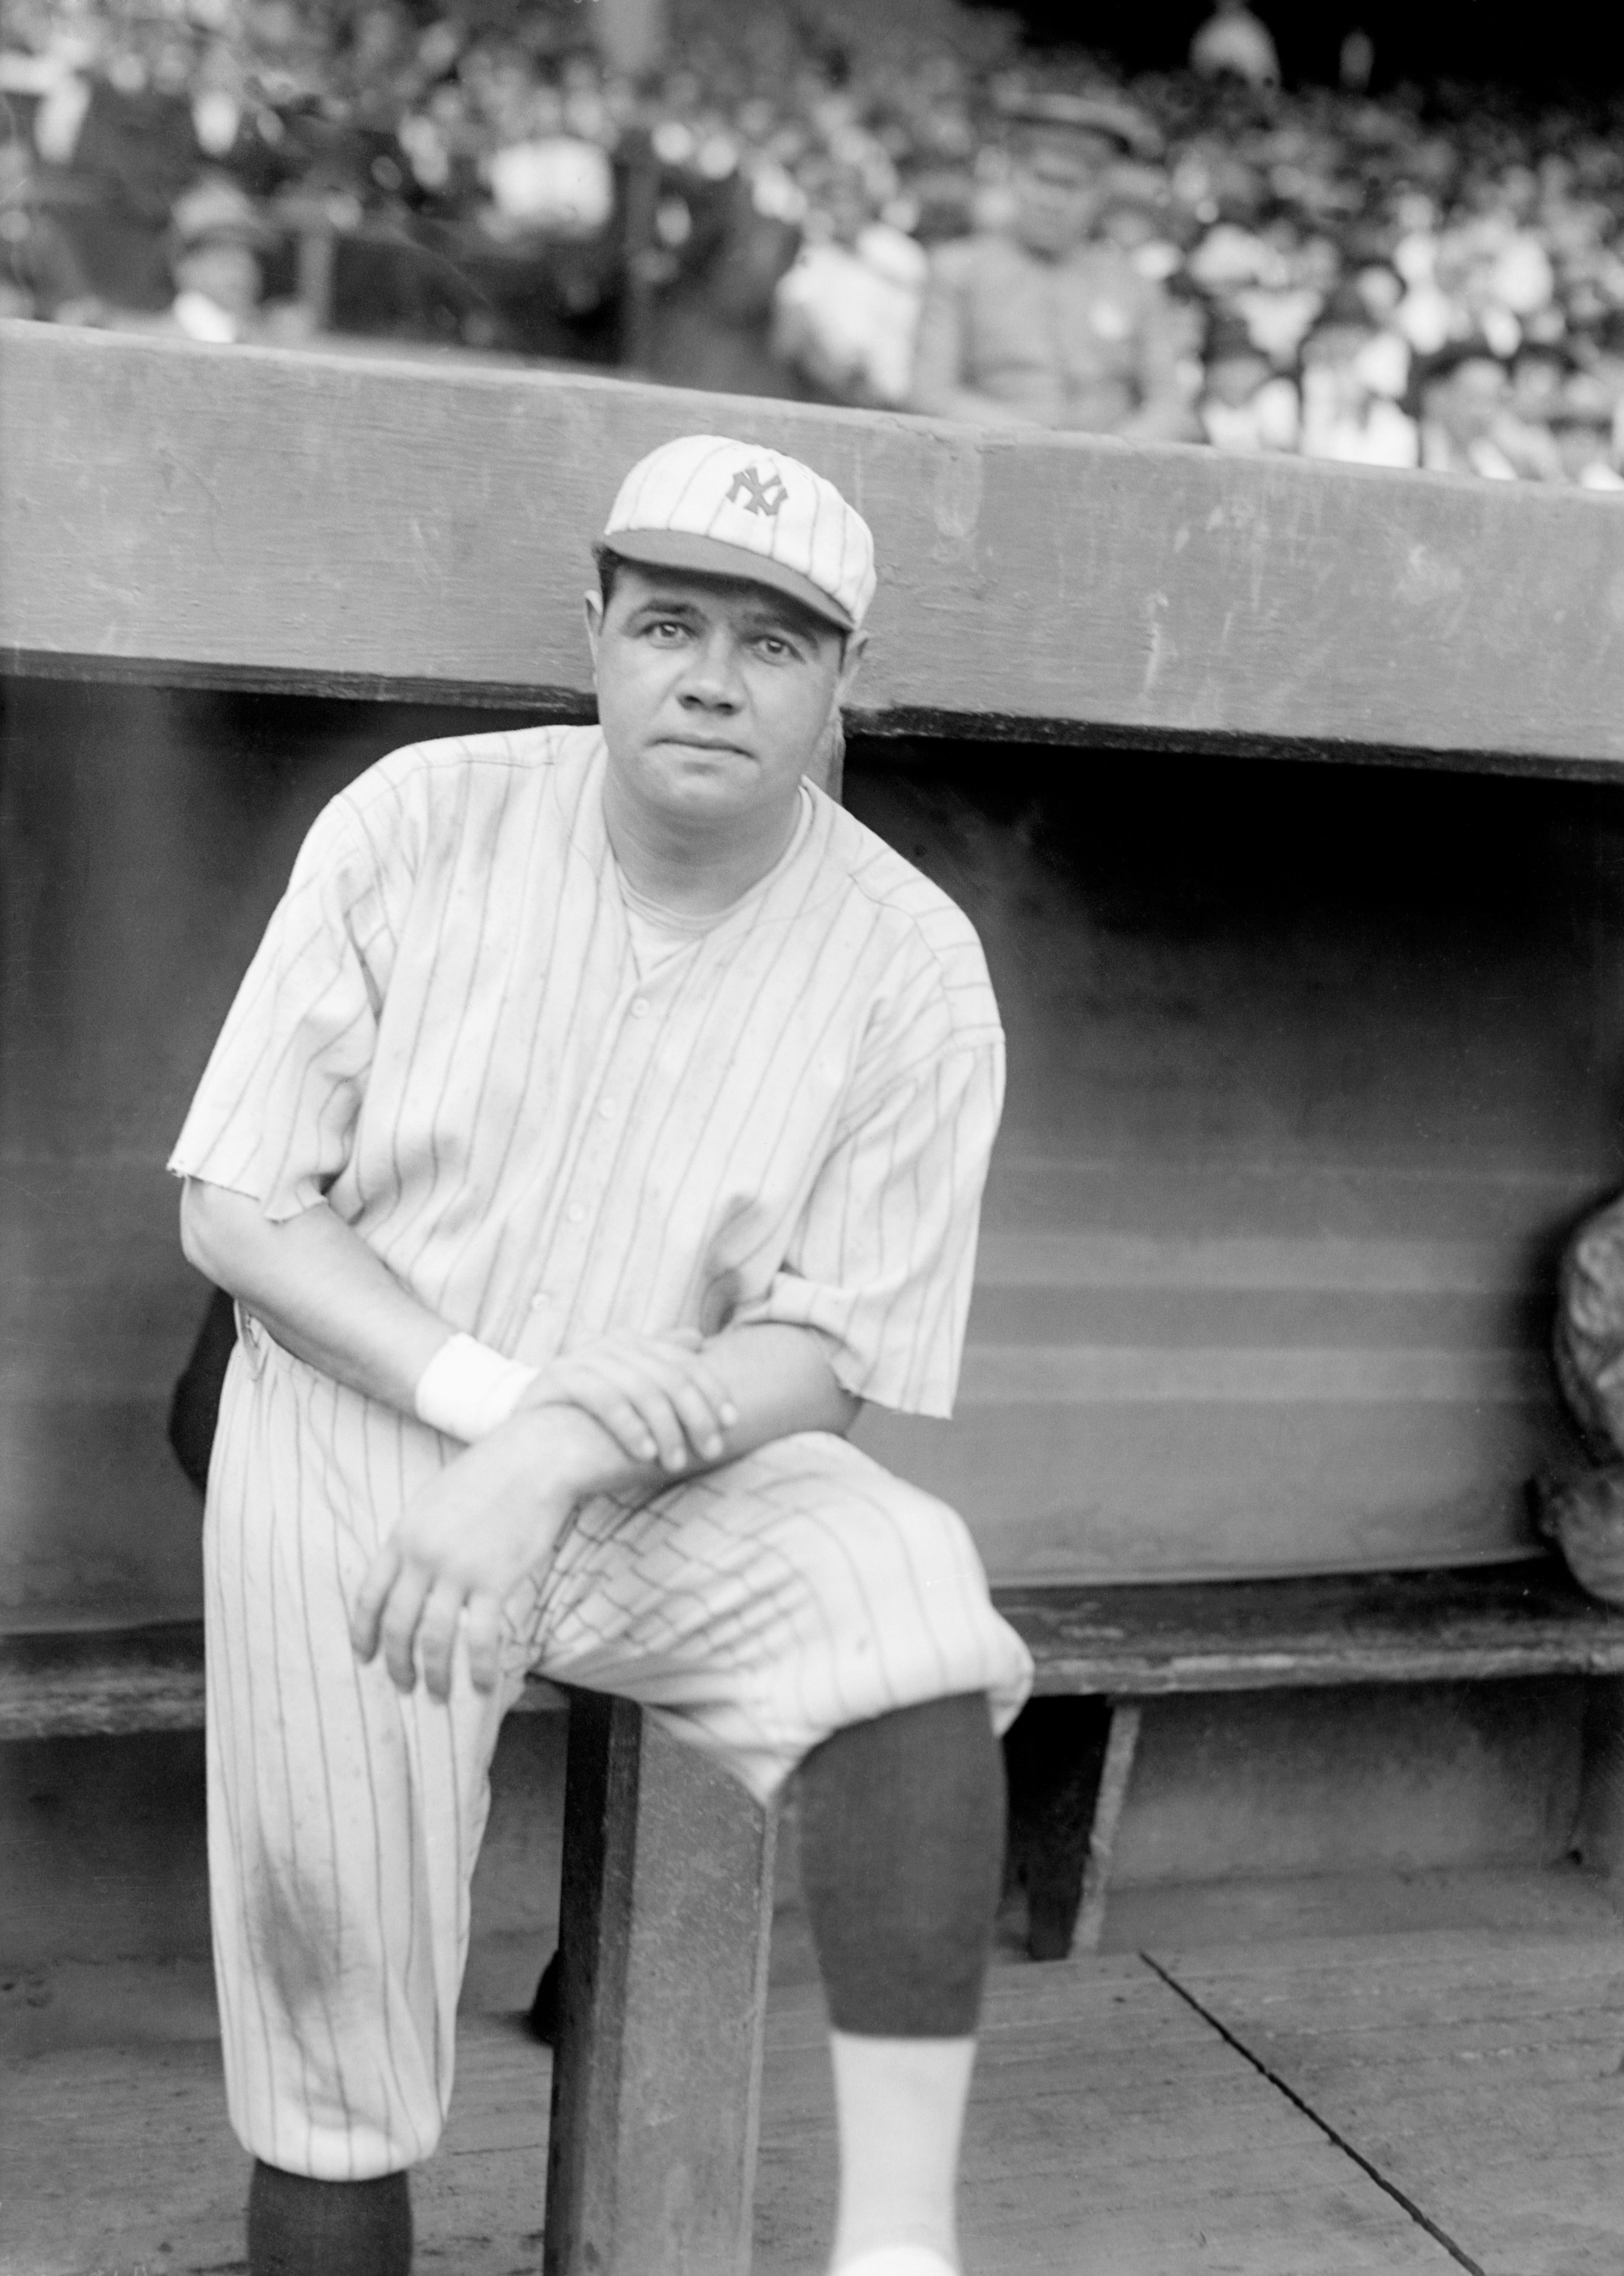 Mandatory Credit: Photo by Everett/Shutterstock (10284338a) Babe Ruth, 1921 Historical Collection